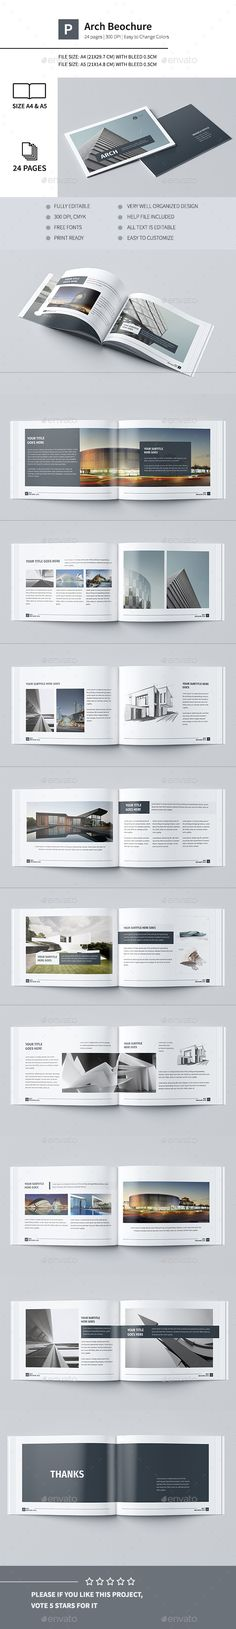 Modern Architecture Brochure 24 Pages A4 & A5 — InDesign INDD #architecture #minimal • Available here → https://graphicriver.net/item/modern-architecture-brochure-24-pages-a4-a5/14633270?ref=pxcr